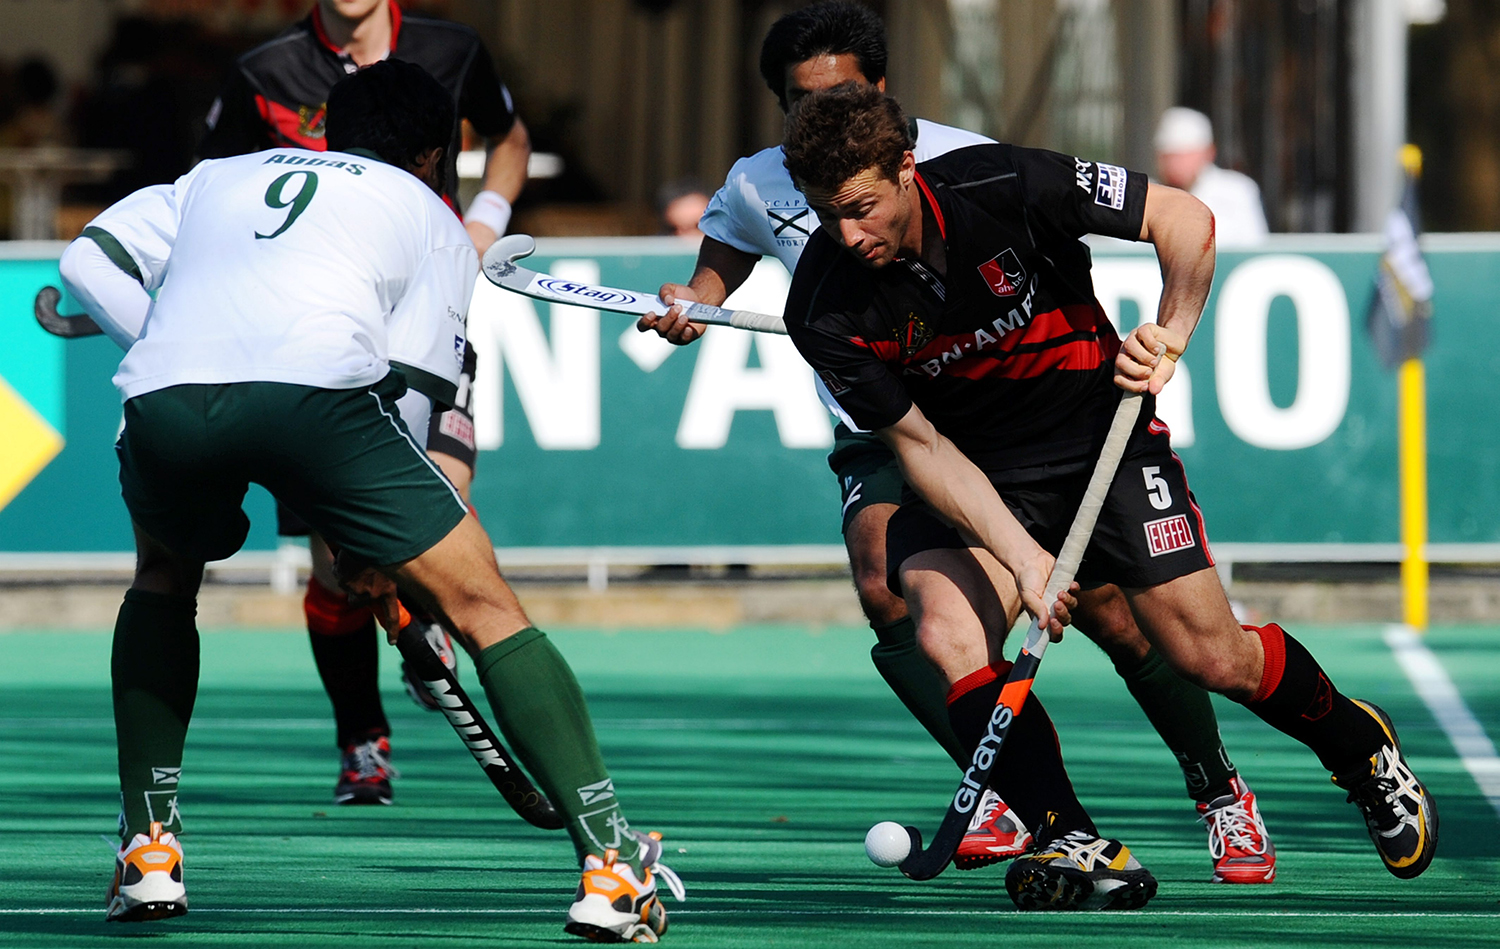 FIH announces format change set to improve hockey experience